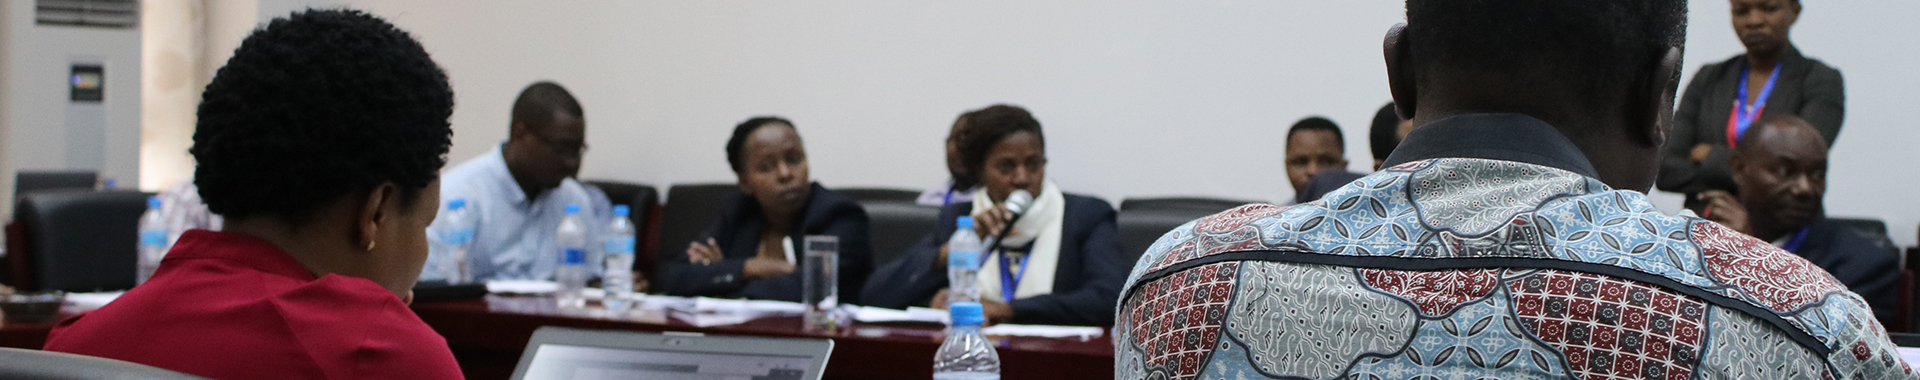 Tanzania project Research review workshop 2020 banner